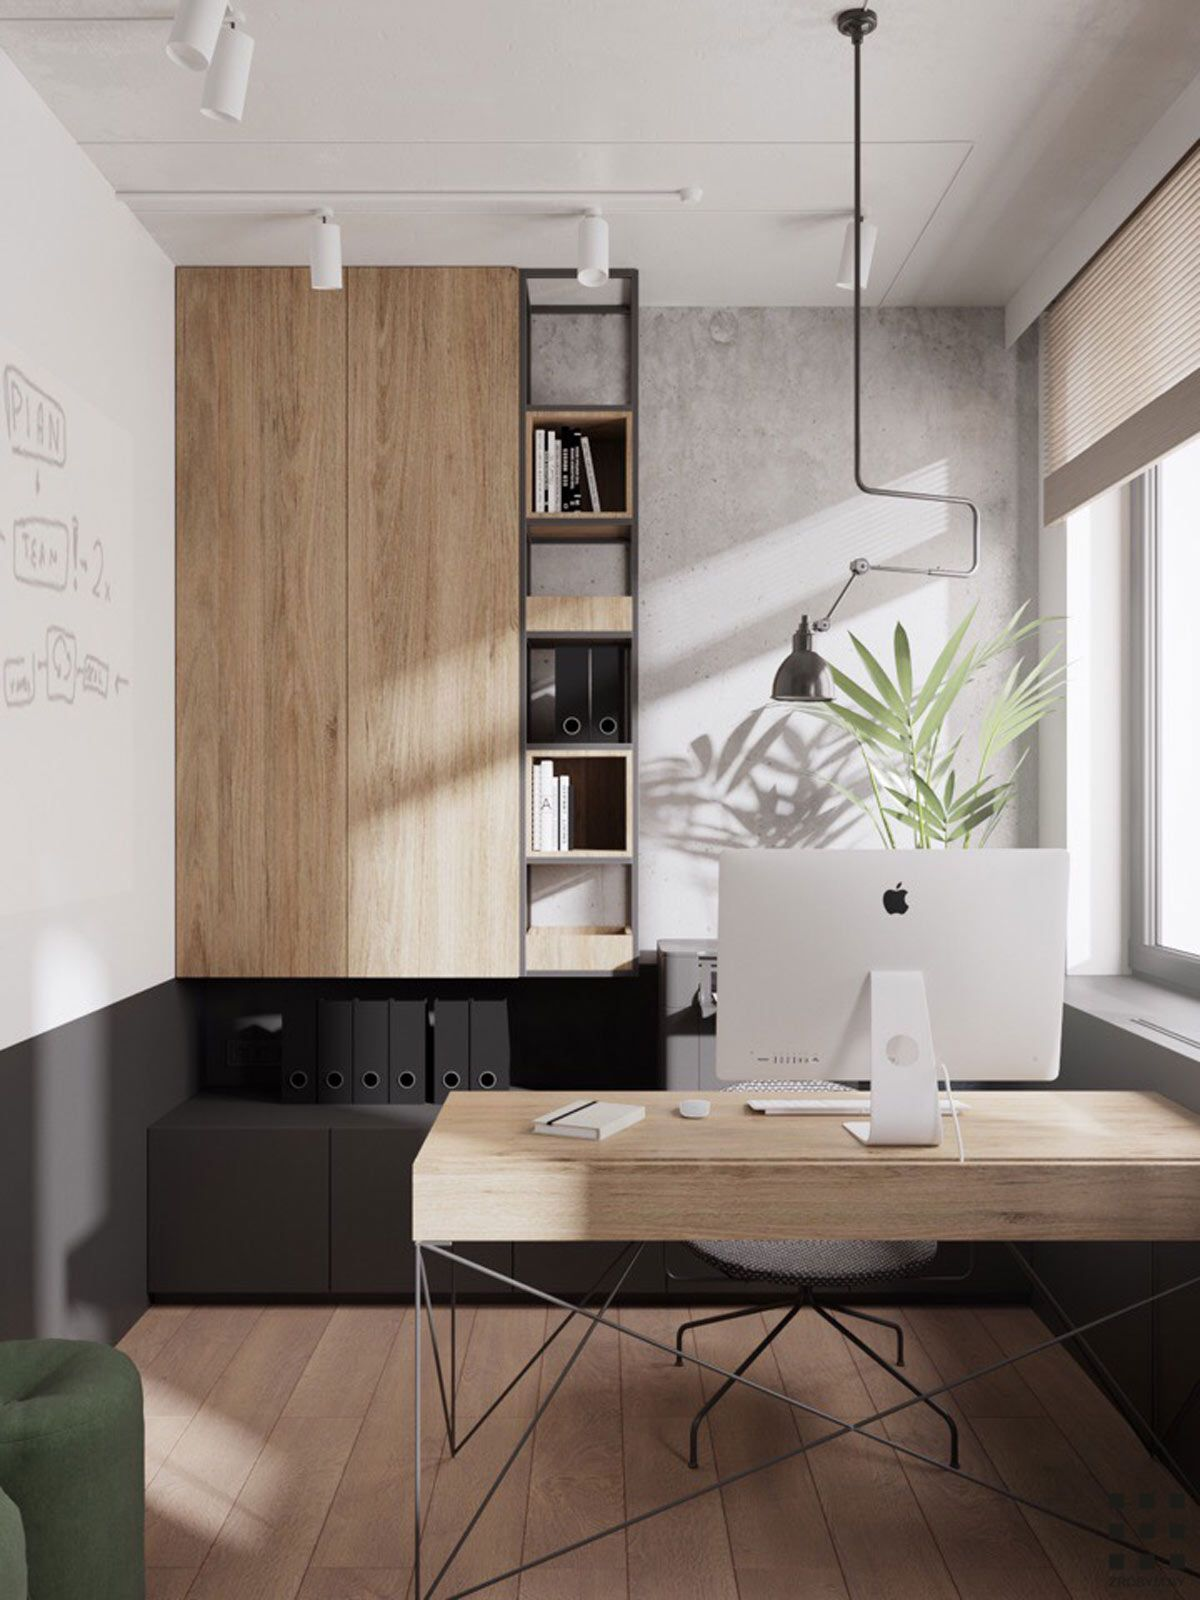 Lighthouse Small Office Design Interior Home Office Design Office Interior Design